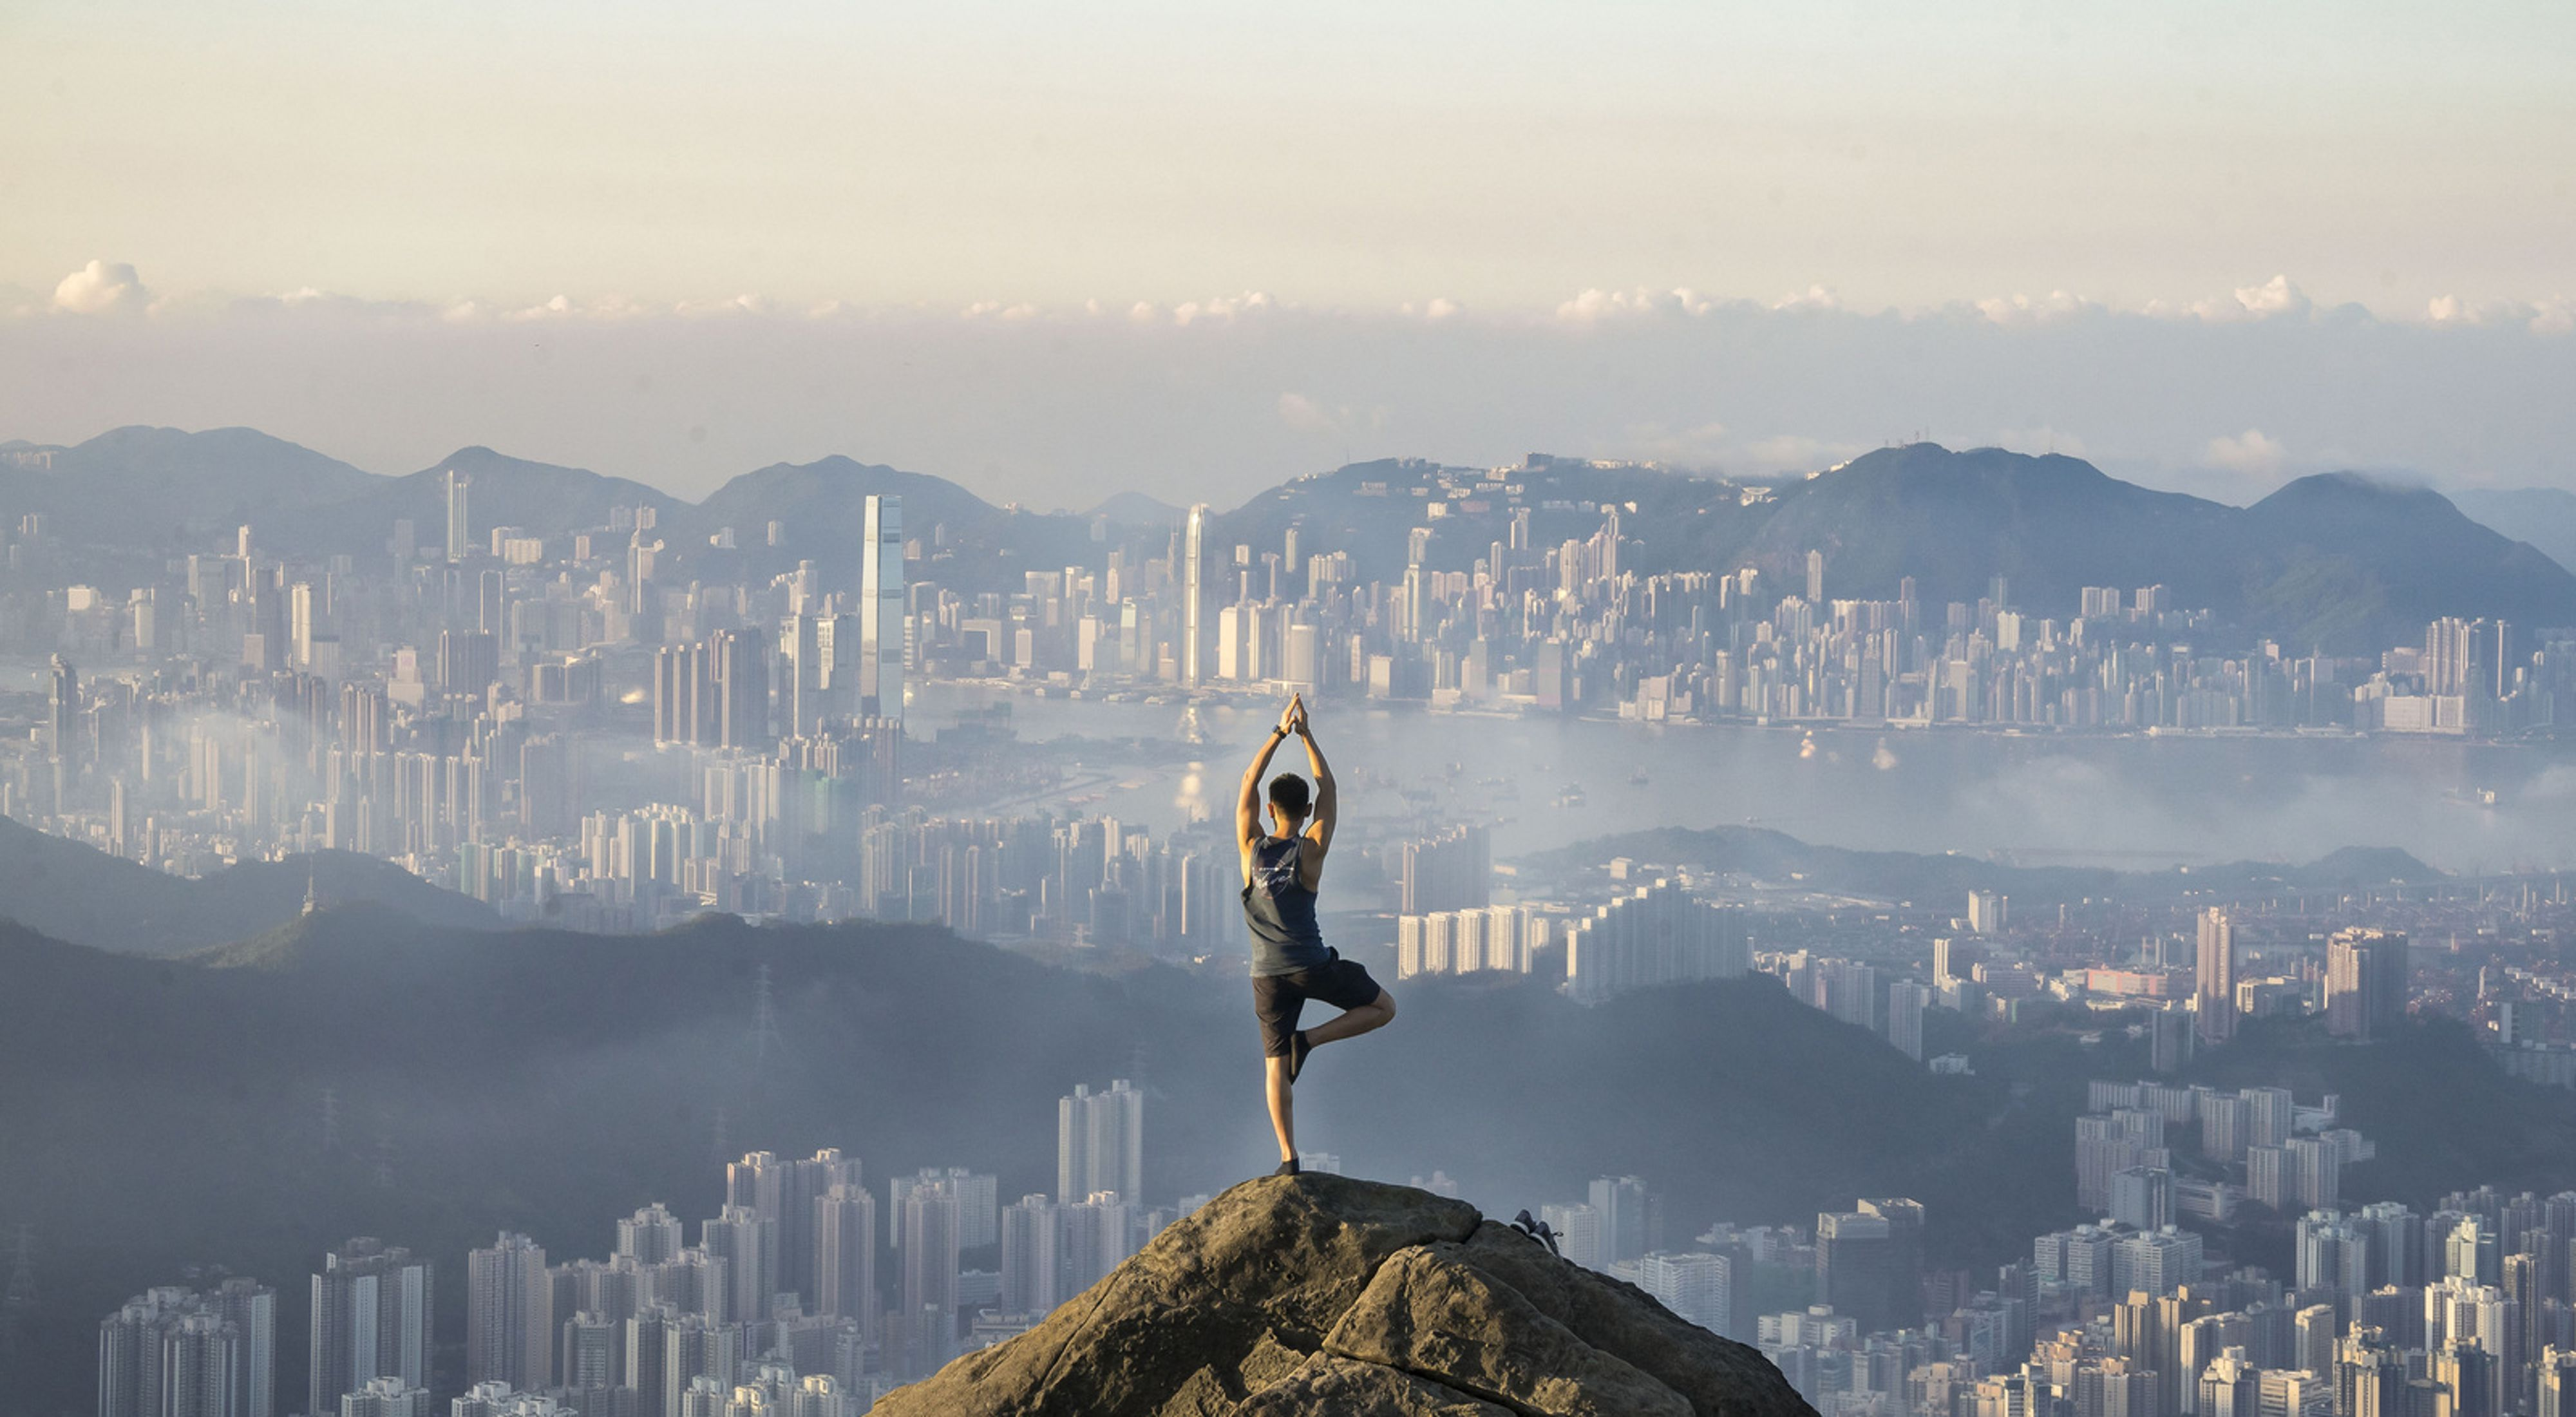 A person does yoga overlooking the skyline of Hong Kong.